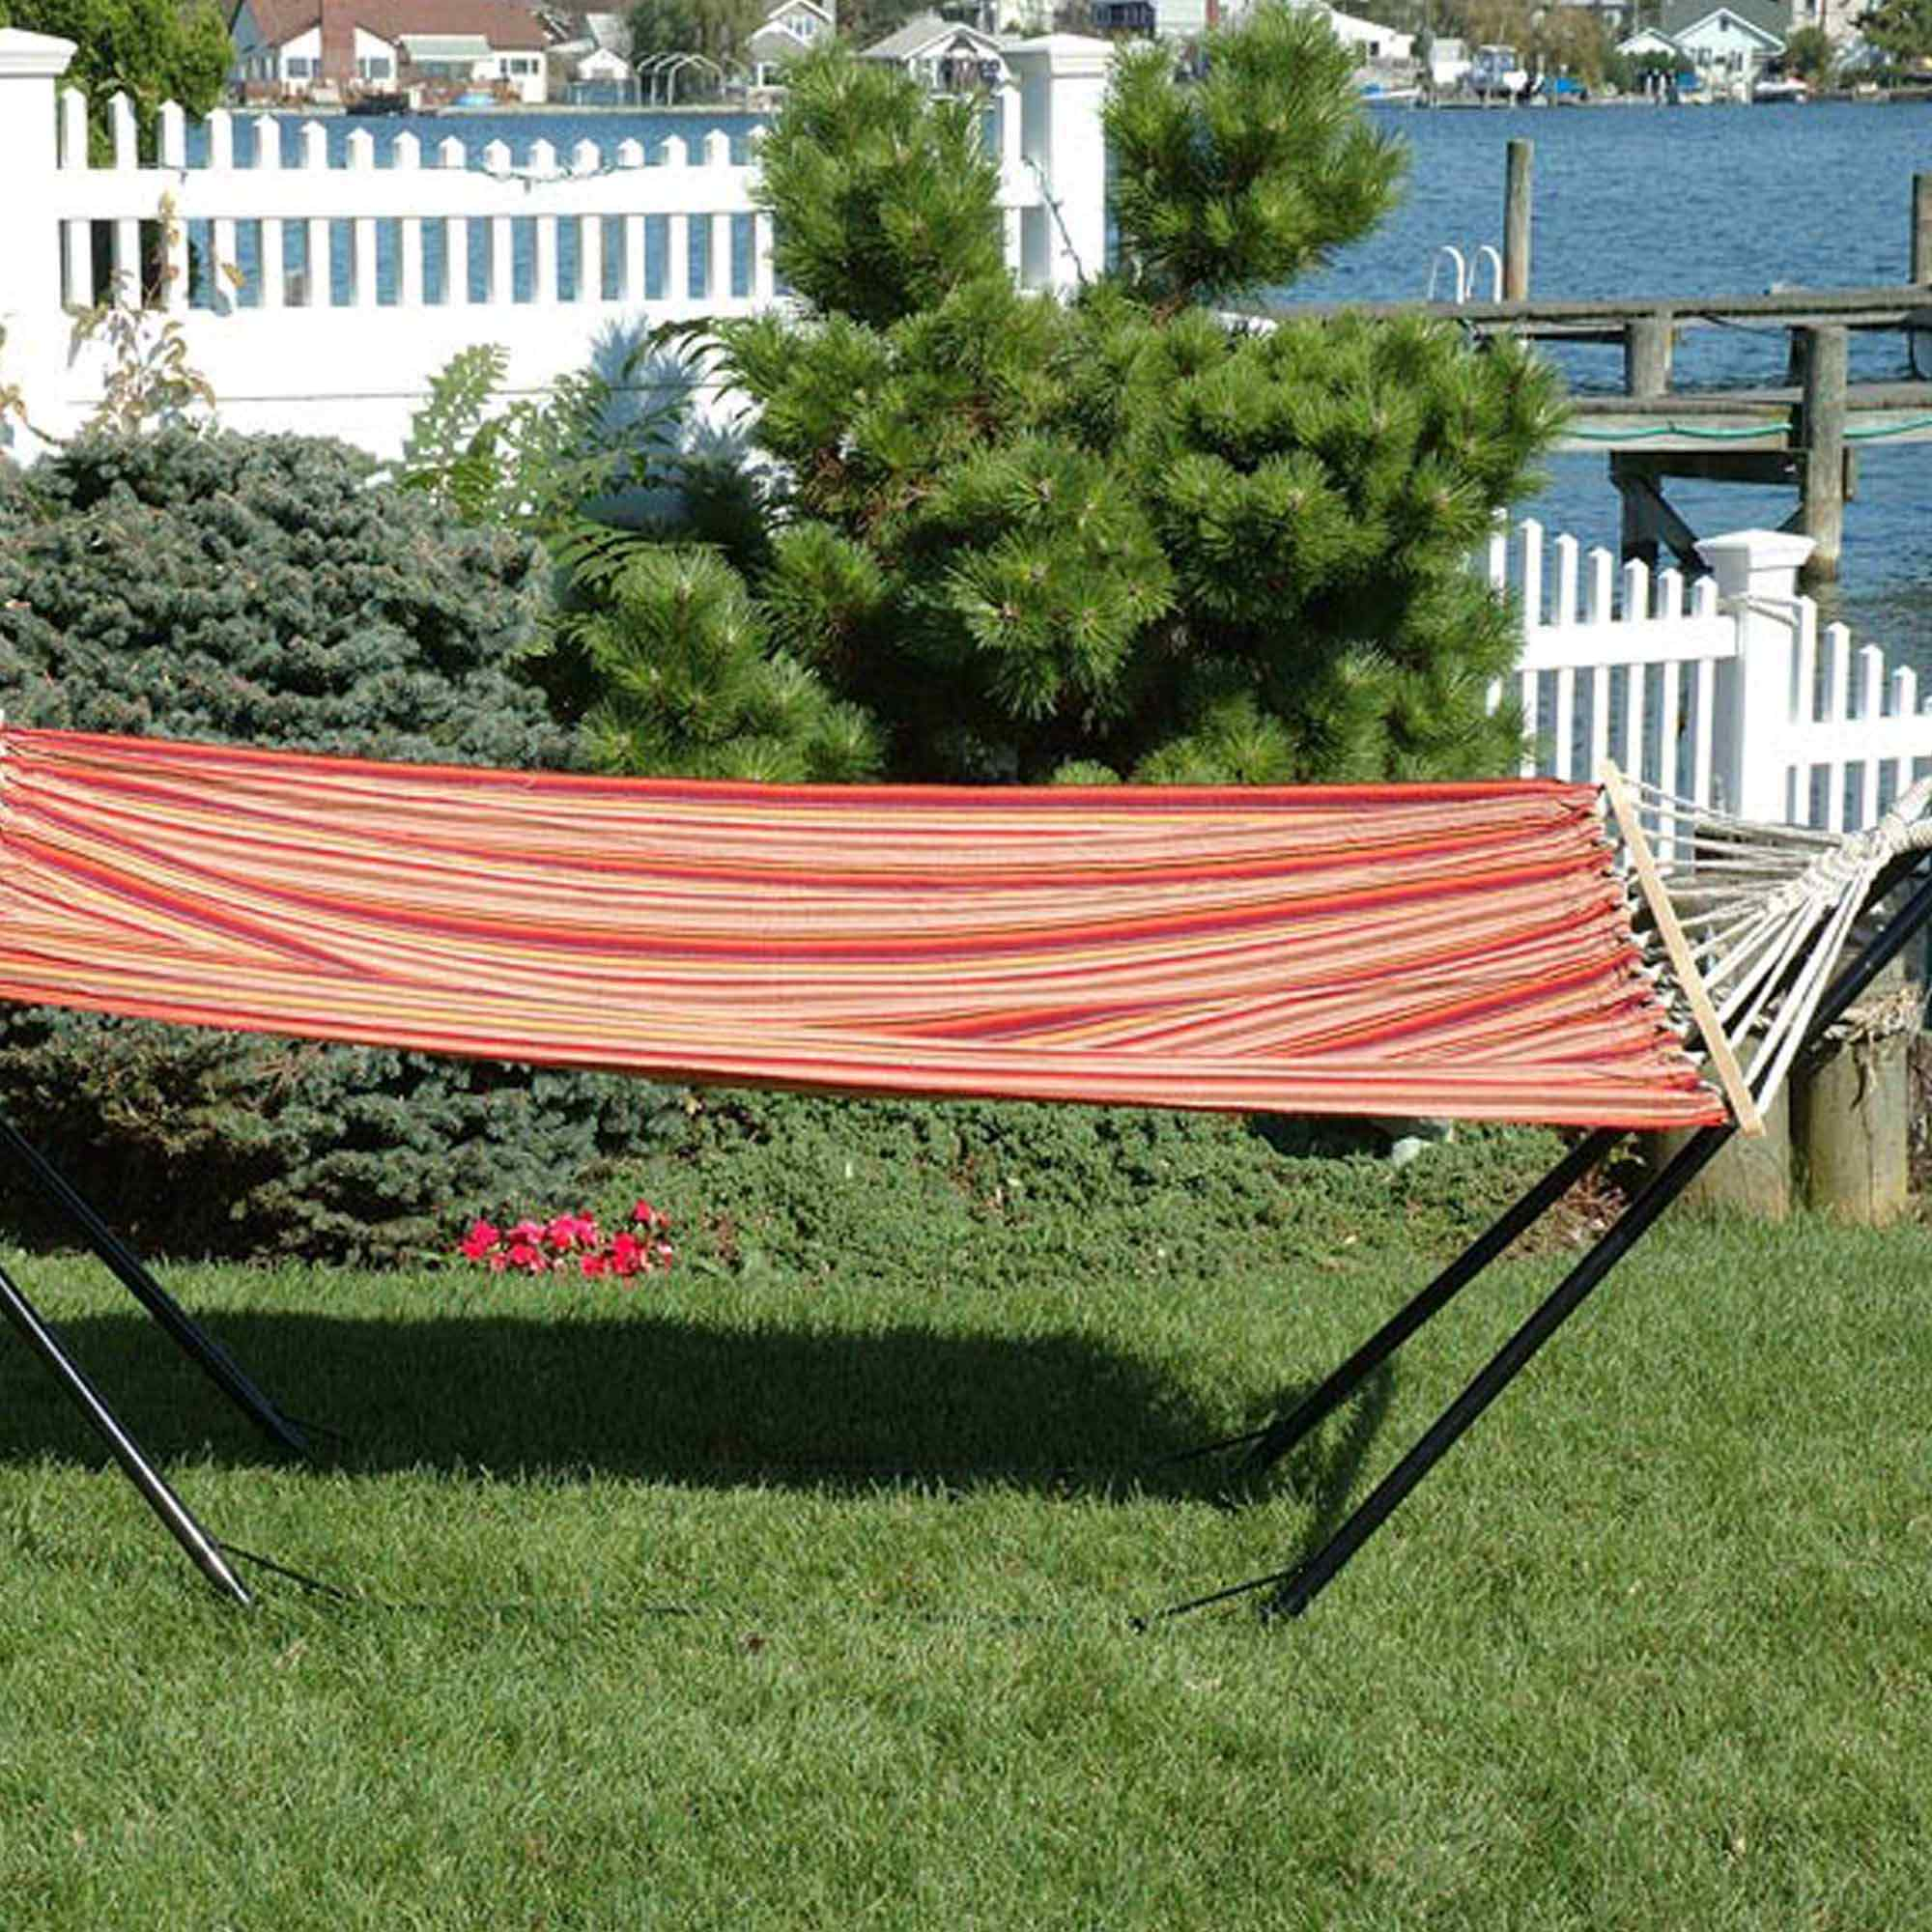 Oversized Hammock With Spreader Bars Toasted Almond